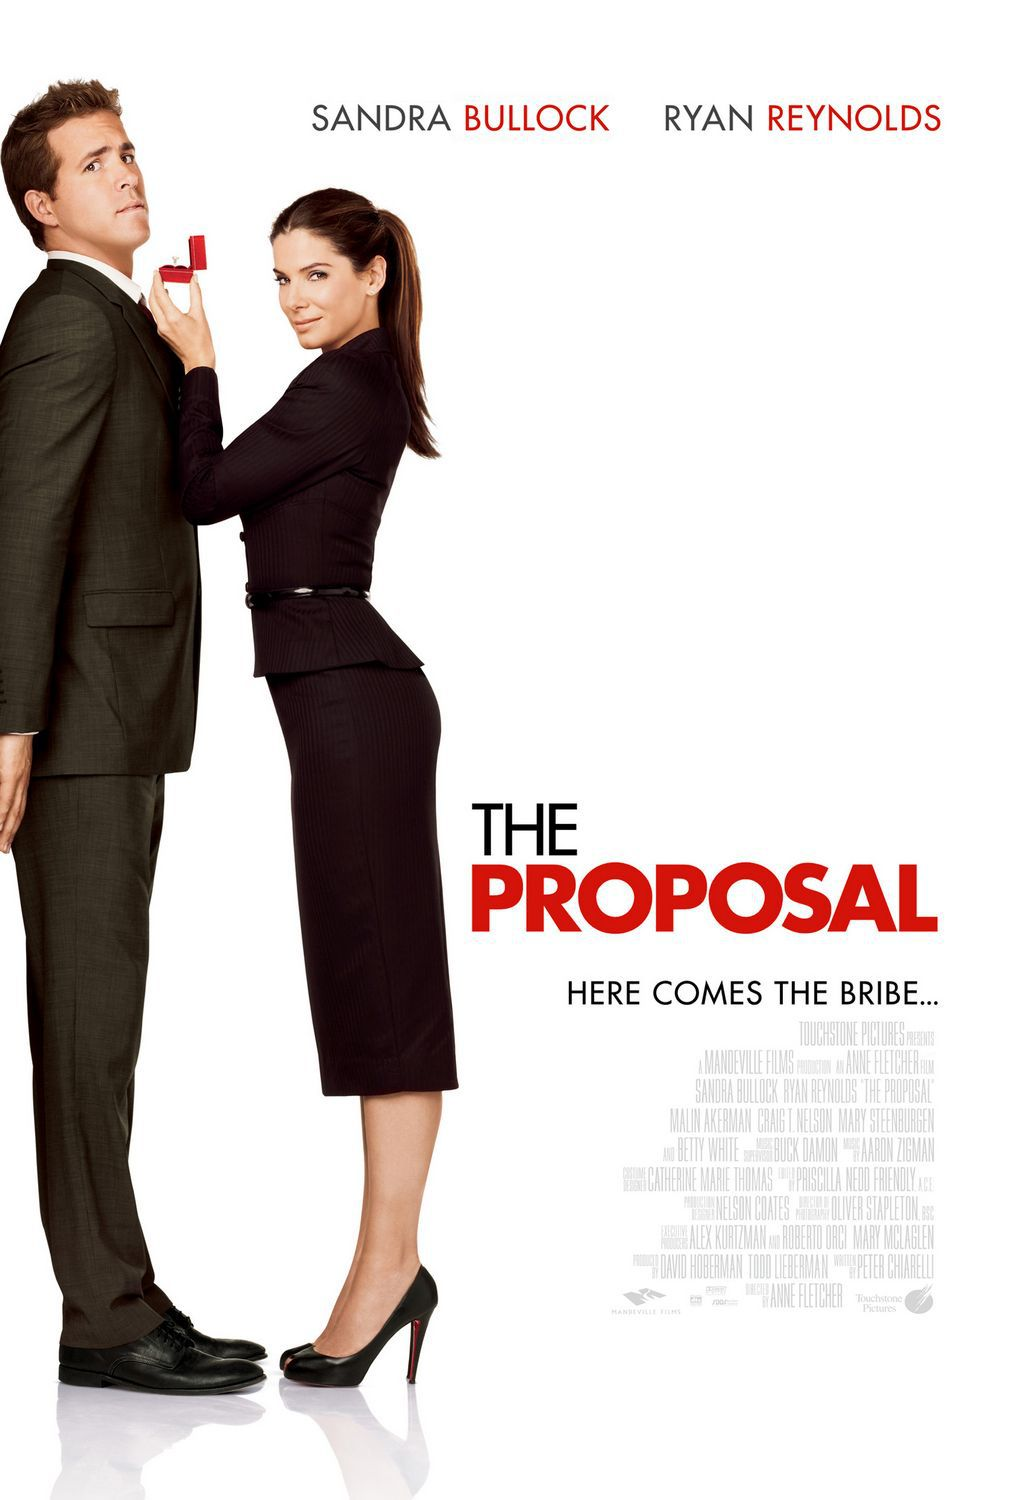 Ricatto d'Amore - The Proposal - Sandra Bullock - Ryan Reynolds